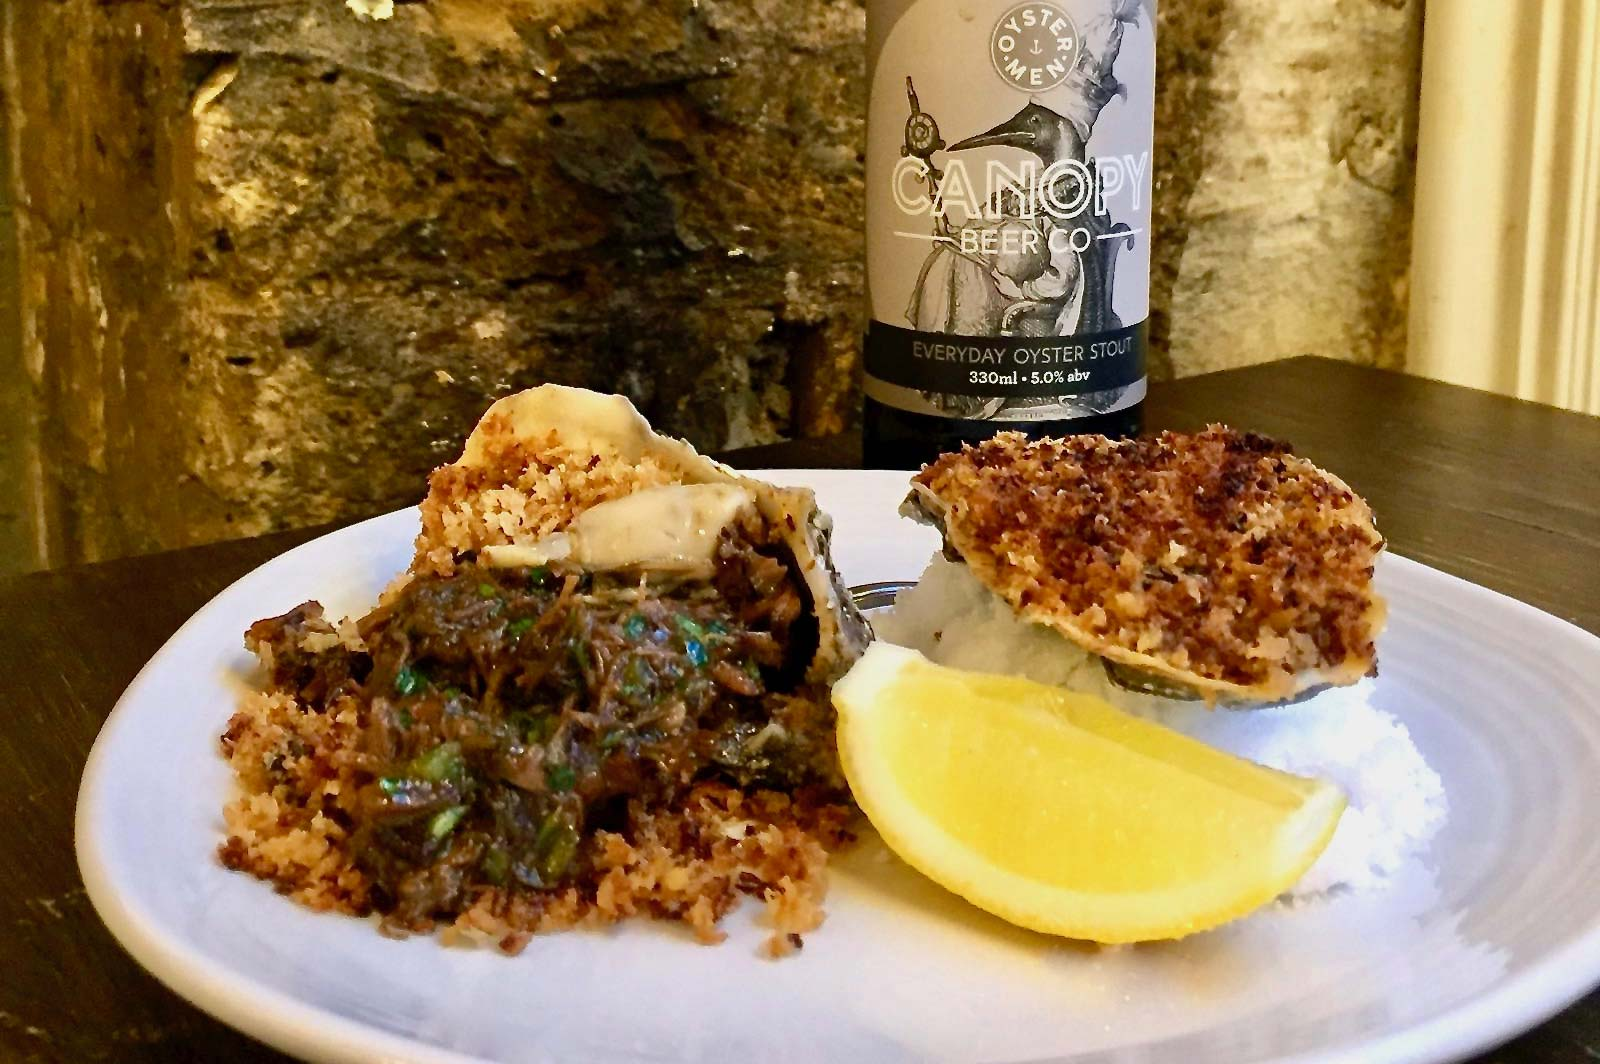 Those looking for an alternative way to celebrate British Pie Week can head to The Oystermen Seafood Bar & Kitchen in Covent Garden